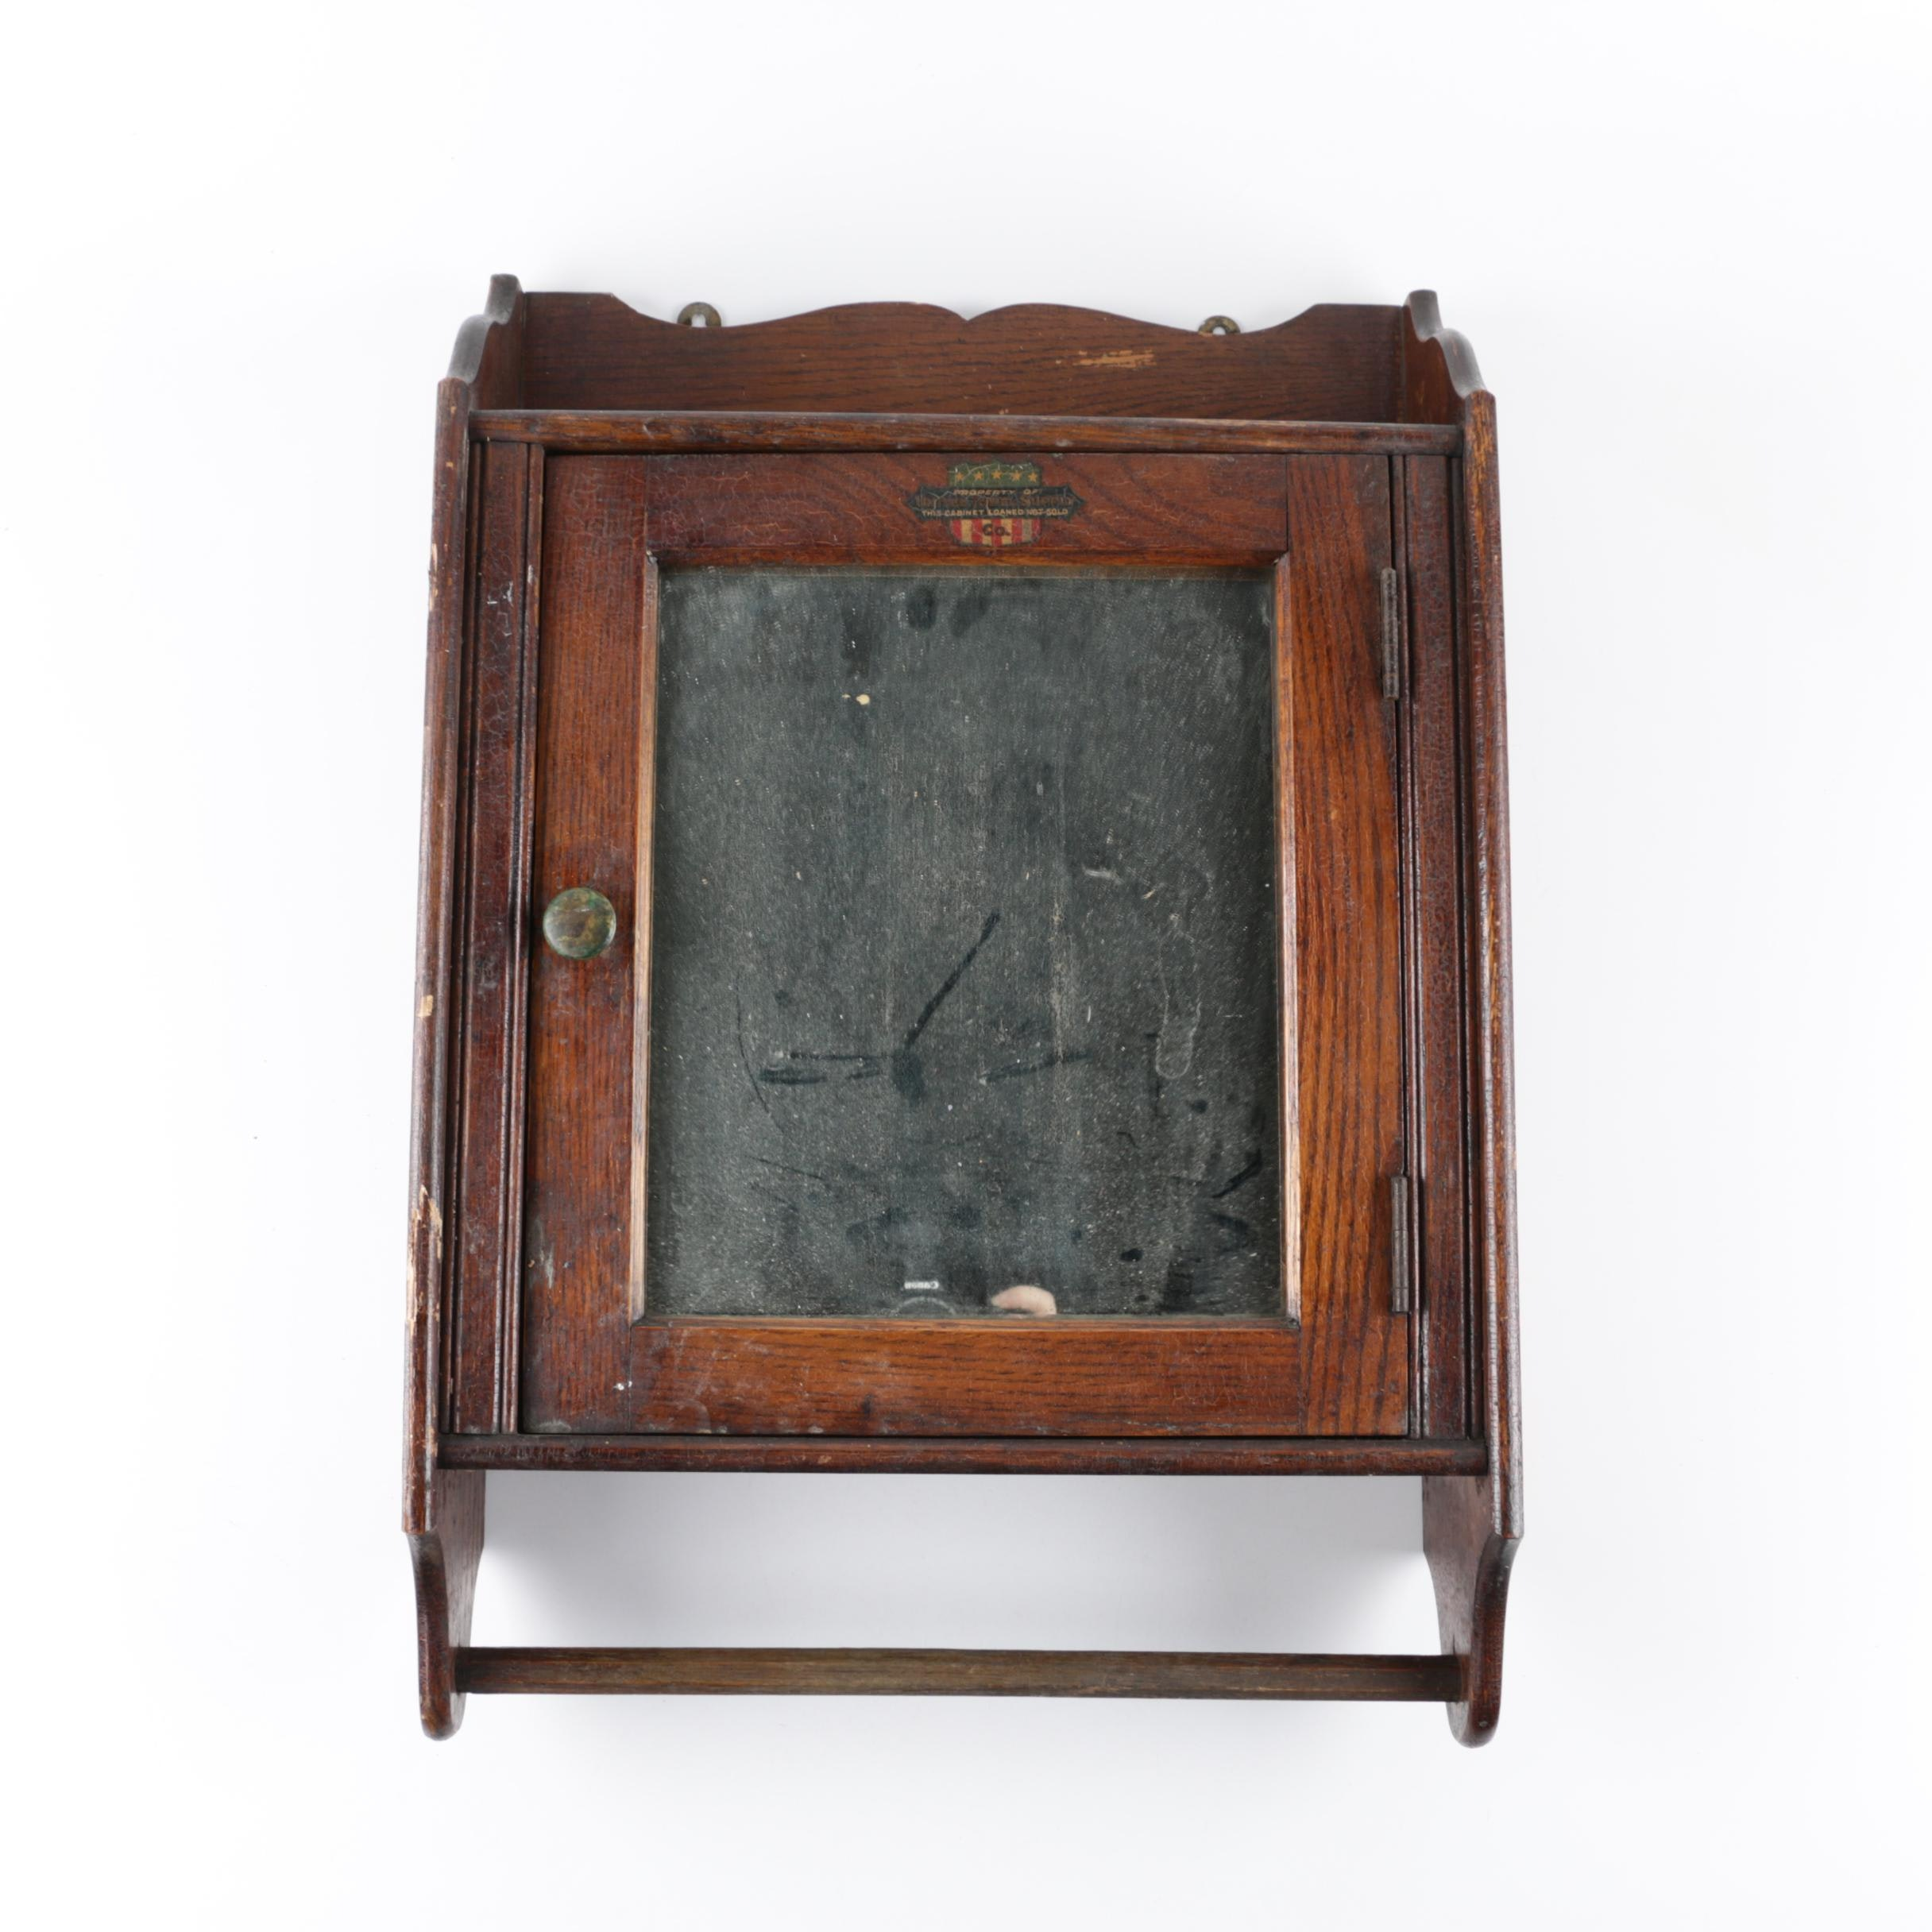 United Towel Supply Co. Mirrored Wood Wall Cabinet